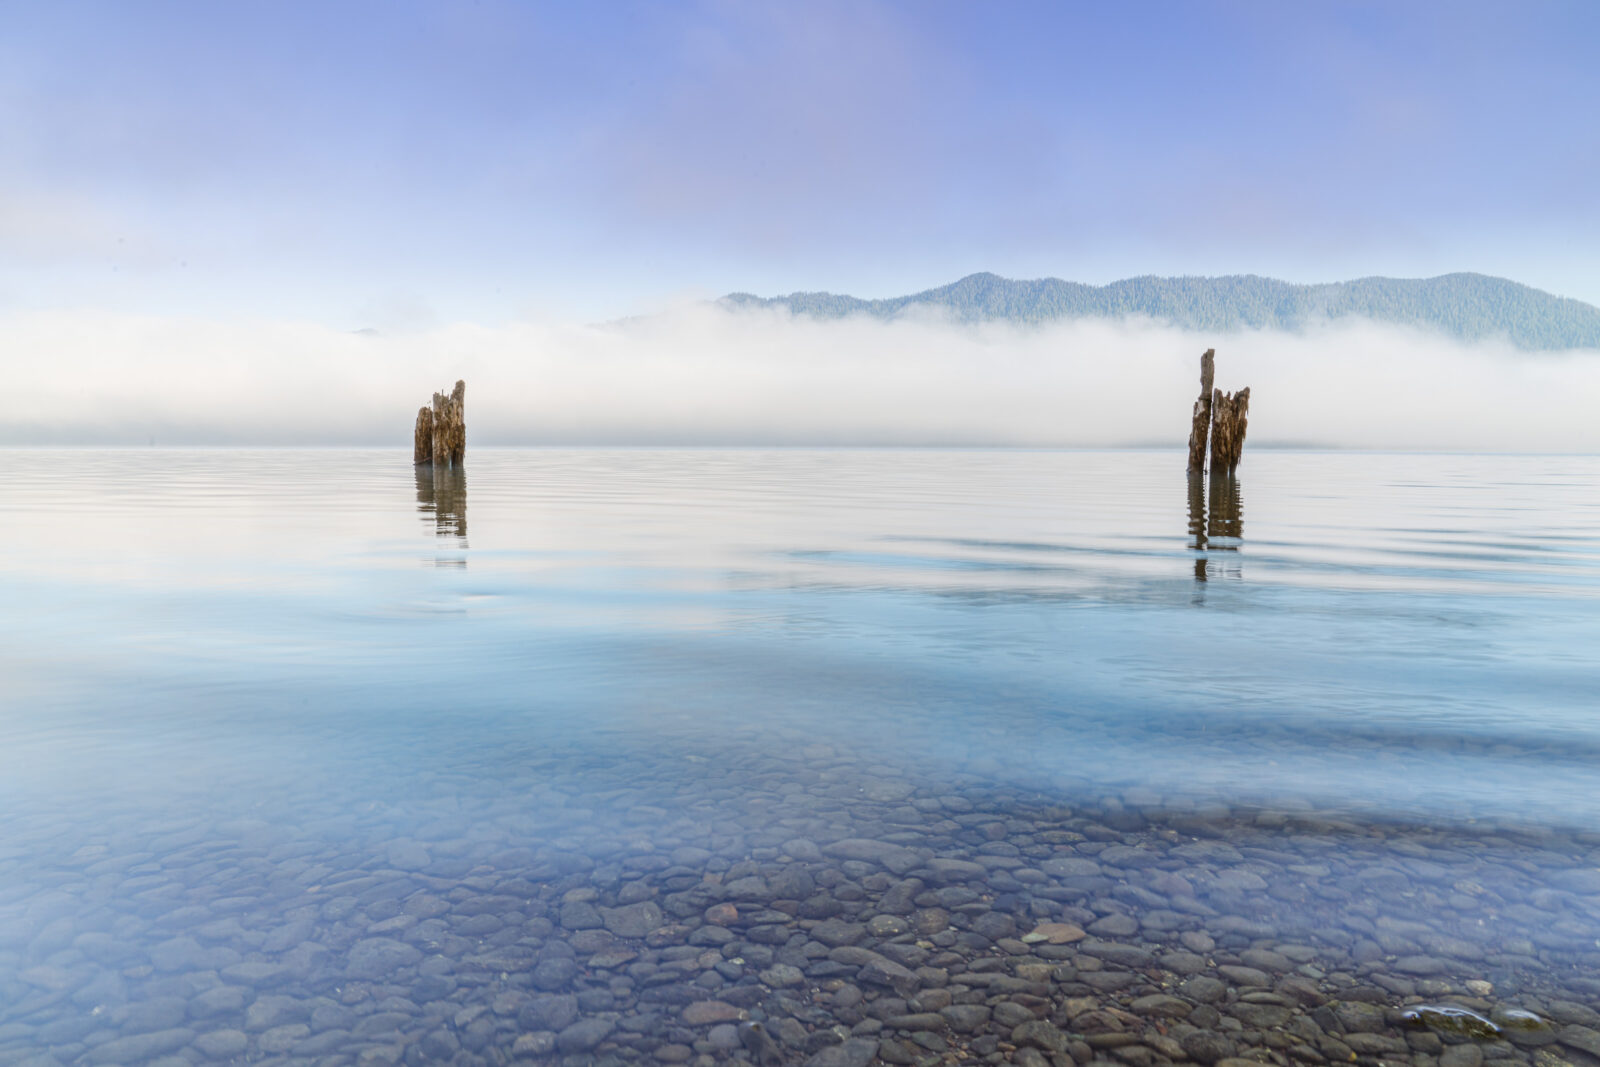 Lake Quinault at sunrise in Olympic National Park